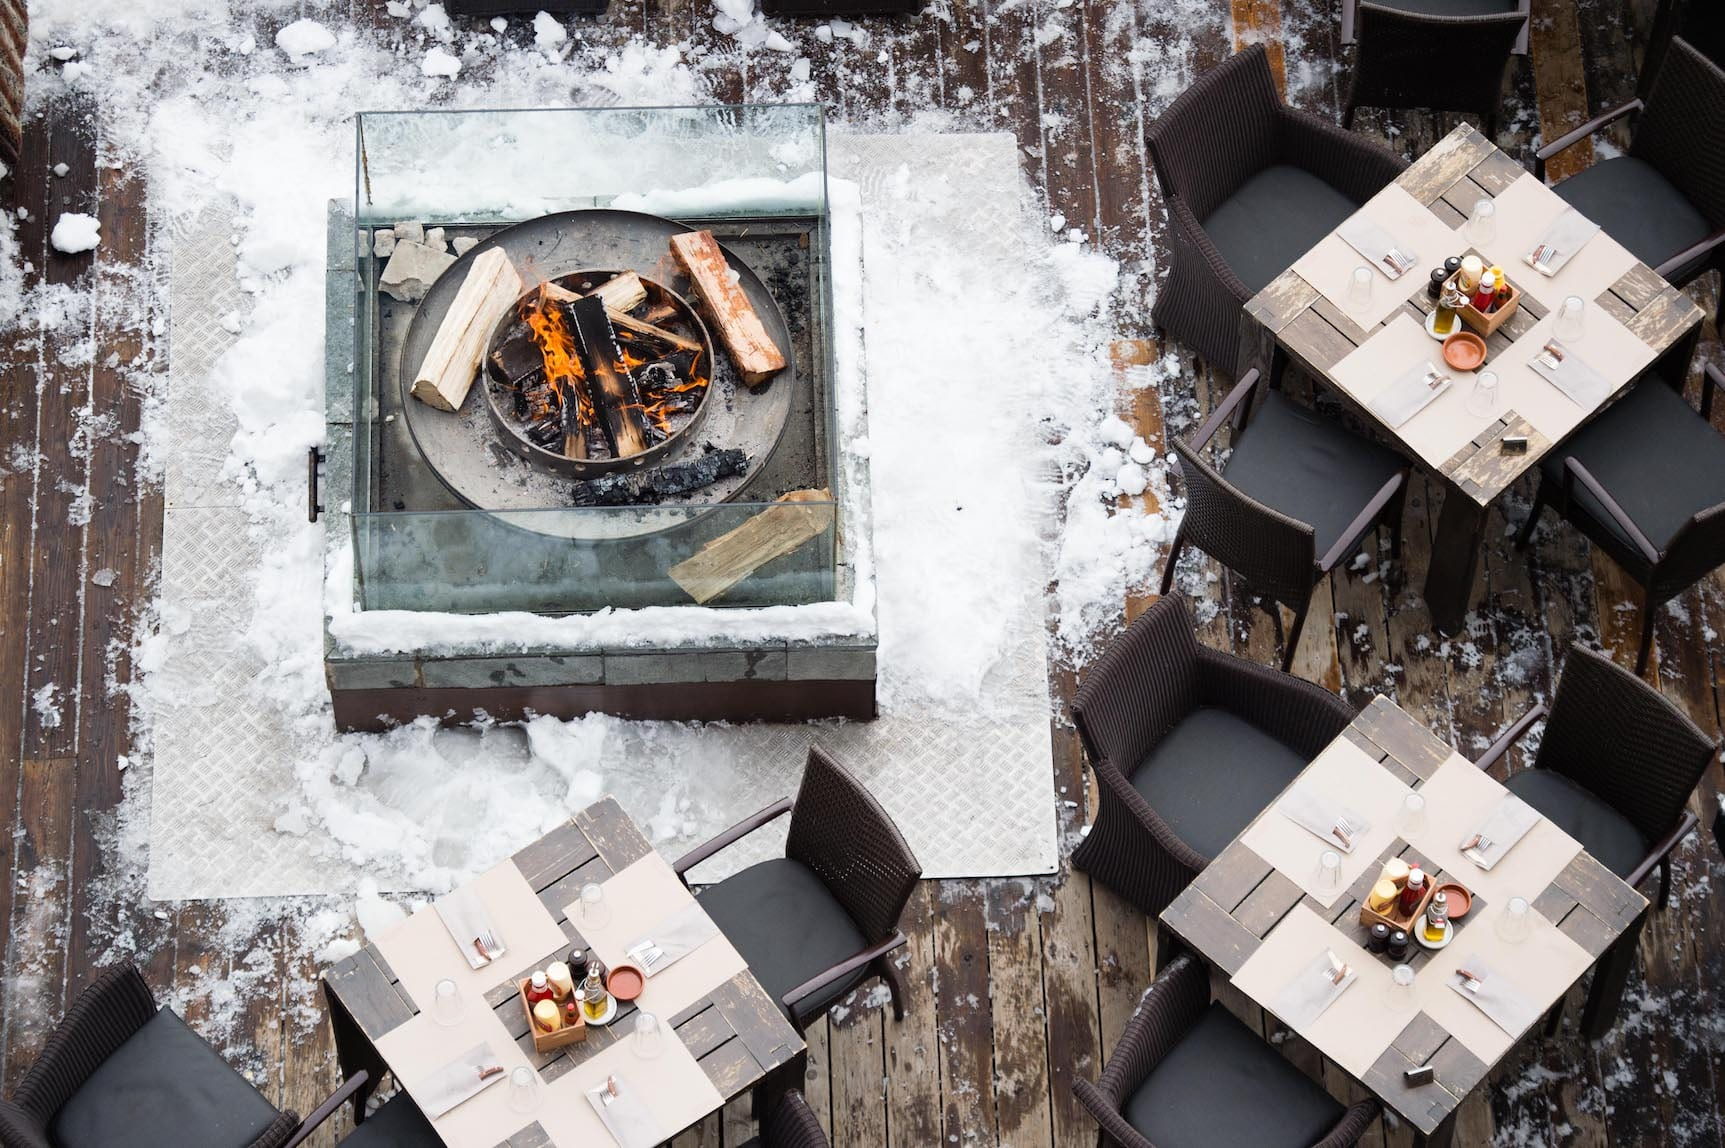 fire-ice-from-above-portetta-amy-murrell-5